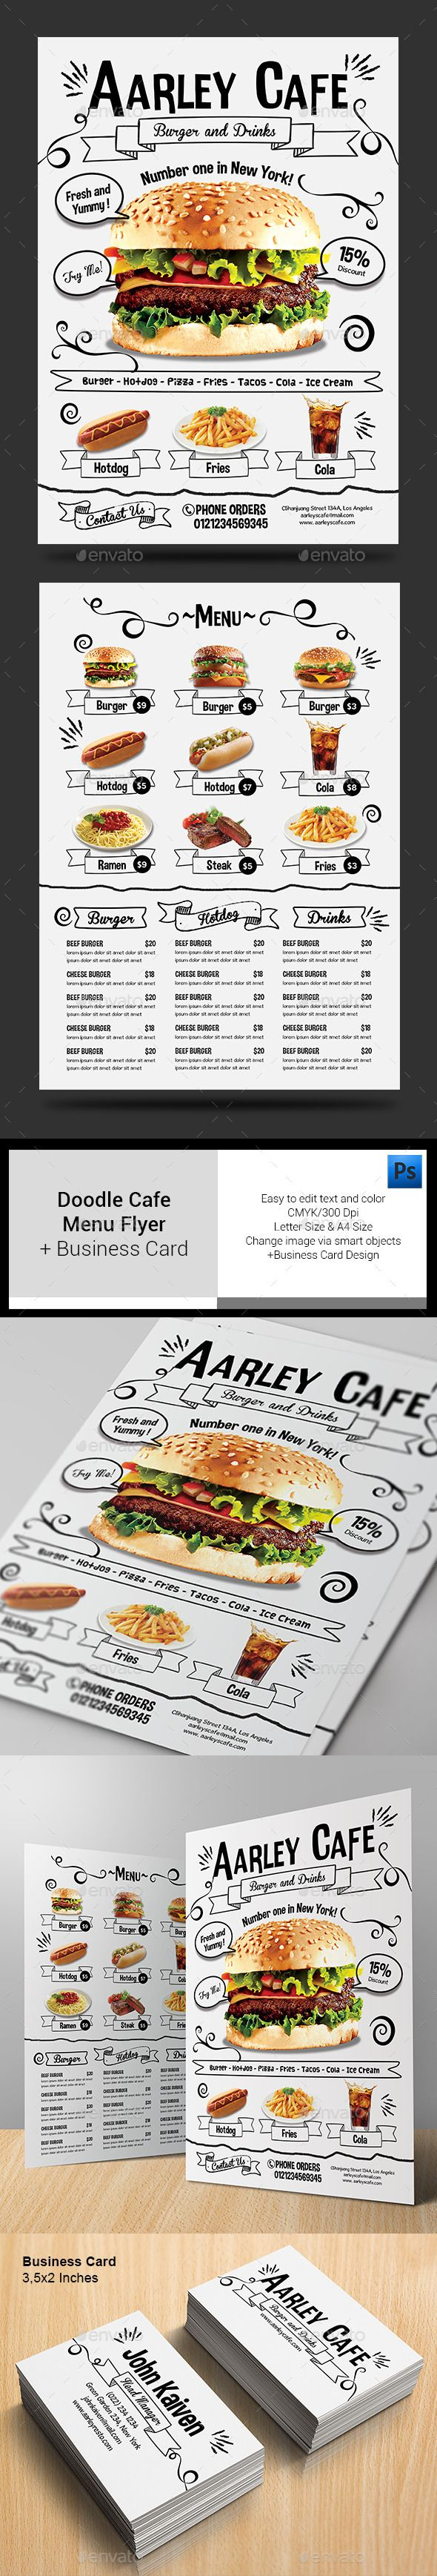 Doodle Cafe Menu + Business Card Template #design Download: http://graphicriver.net/item/doodle-cafe-menu-business-card/13013710?ref=ksioks